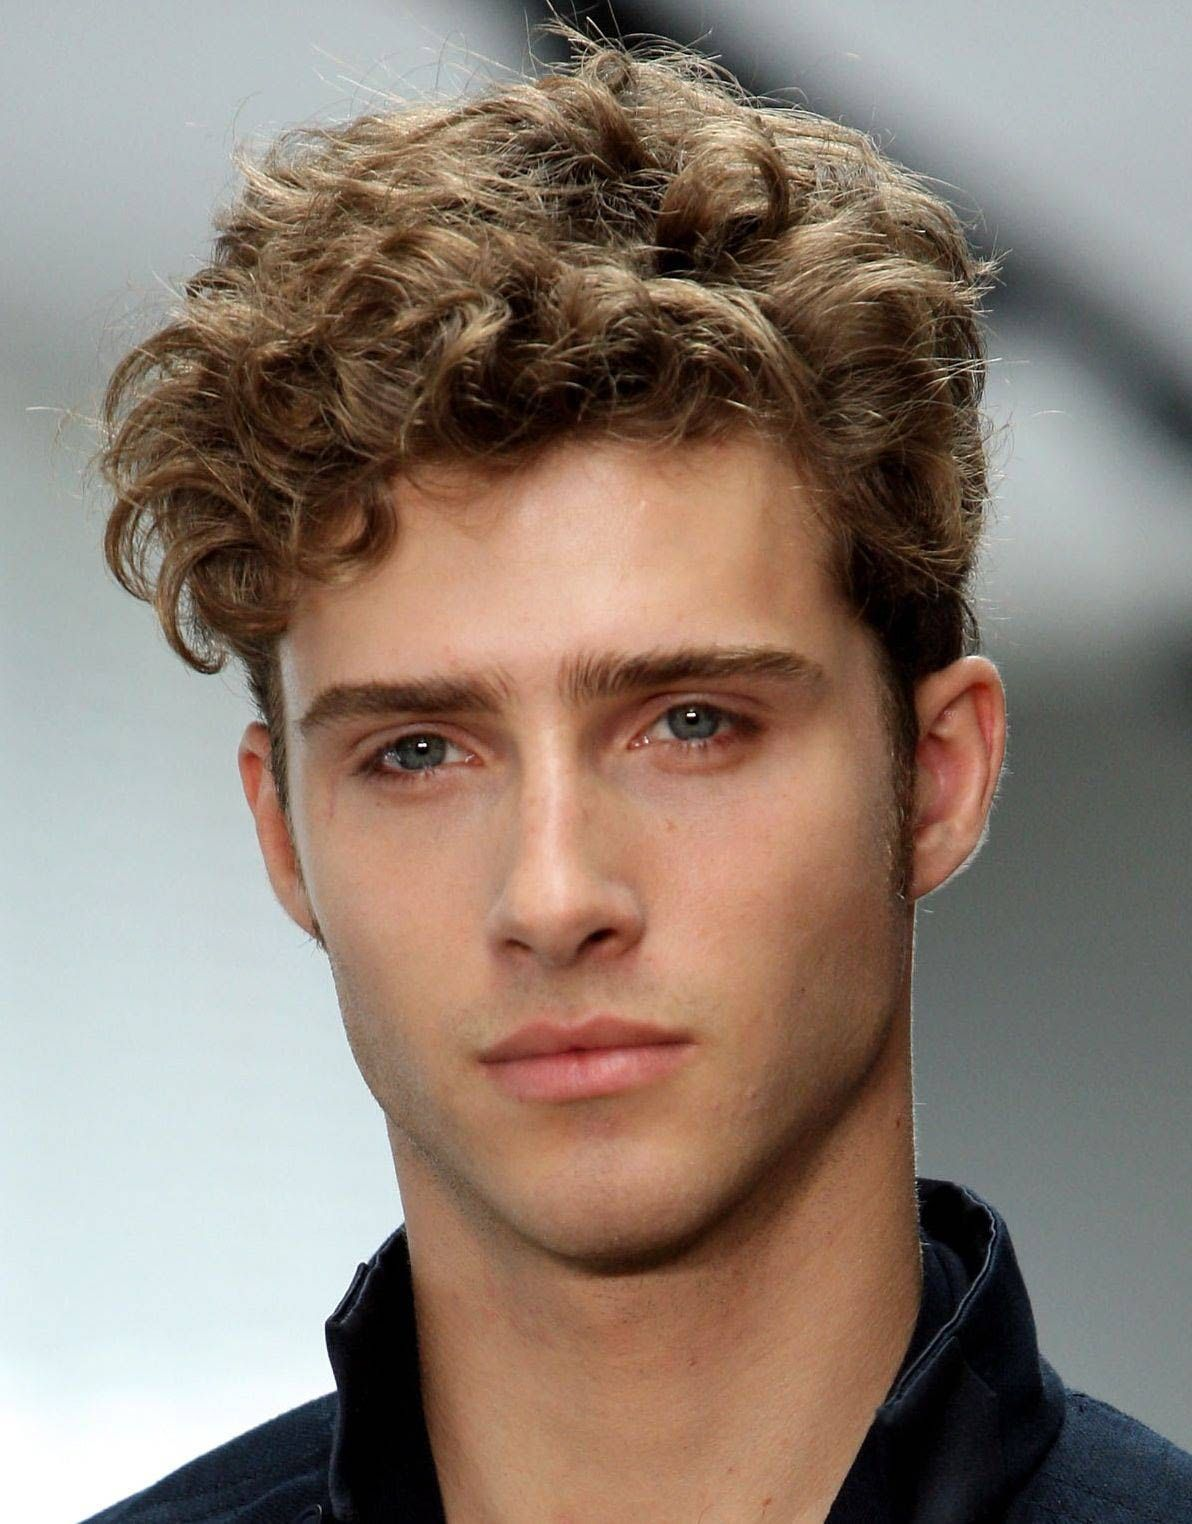 Haircuts Curly Hair trendy simple hairstyle